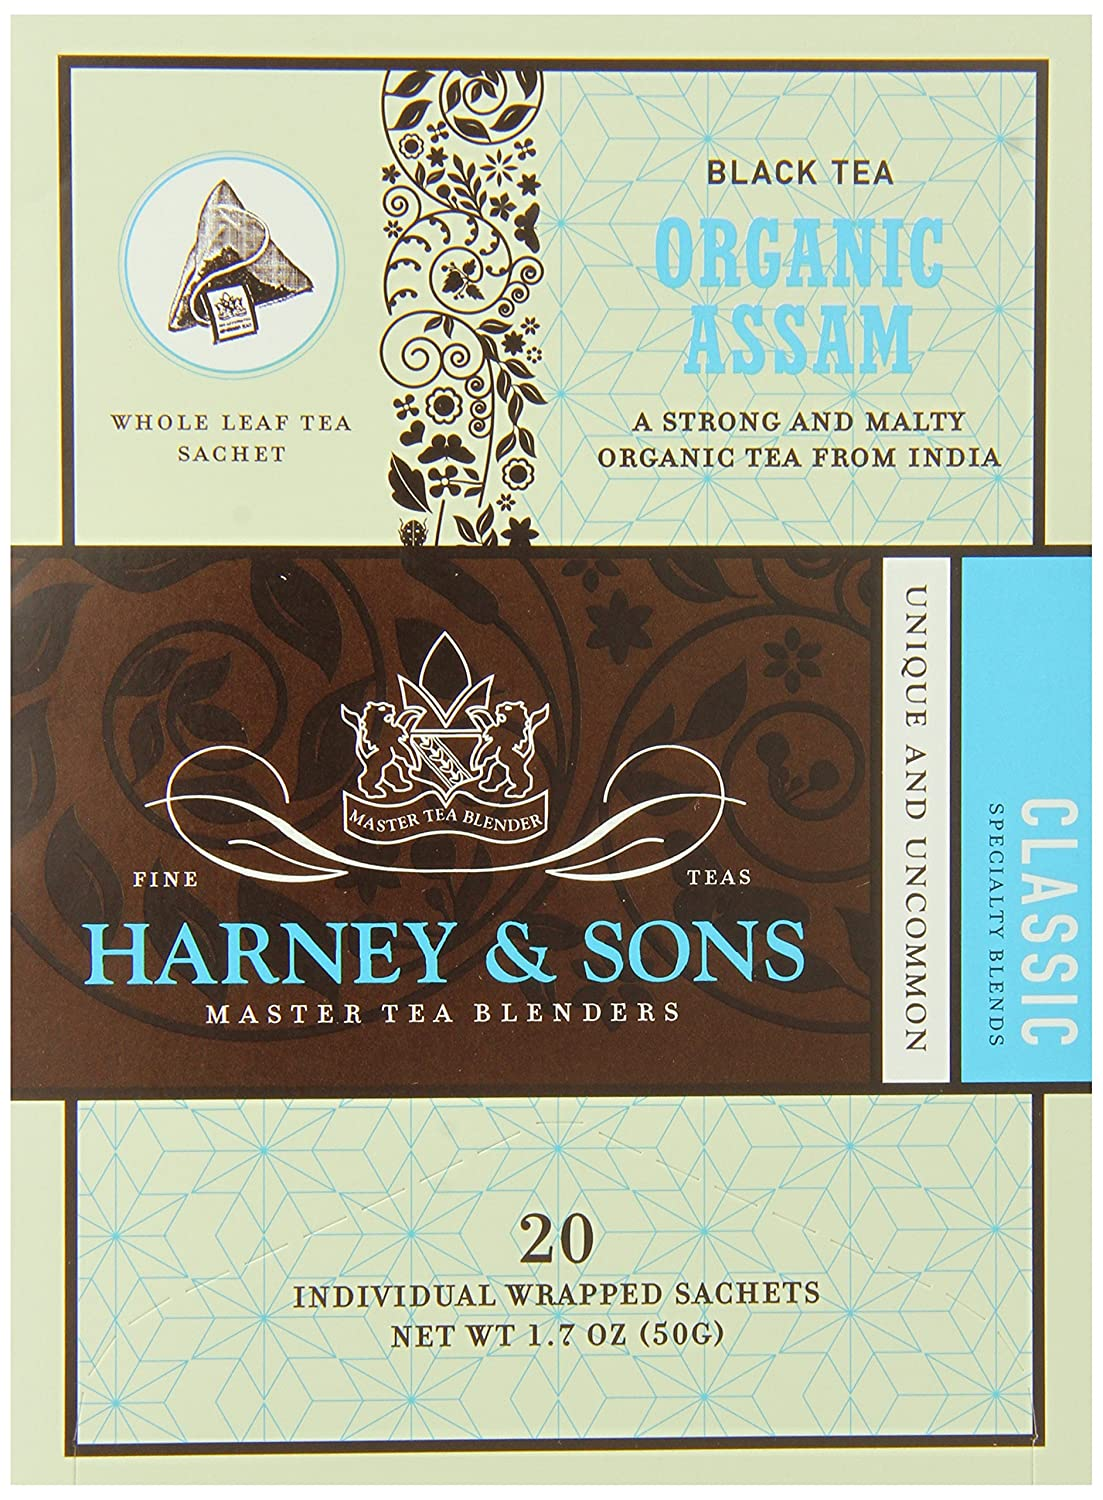 B002YW5HHS Harney & Sons Black Tea, Organic Assam, 1.7 oz, 20 Sachets (Pack of 6) 916qx2BmfERL._SL1500_